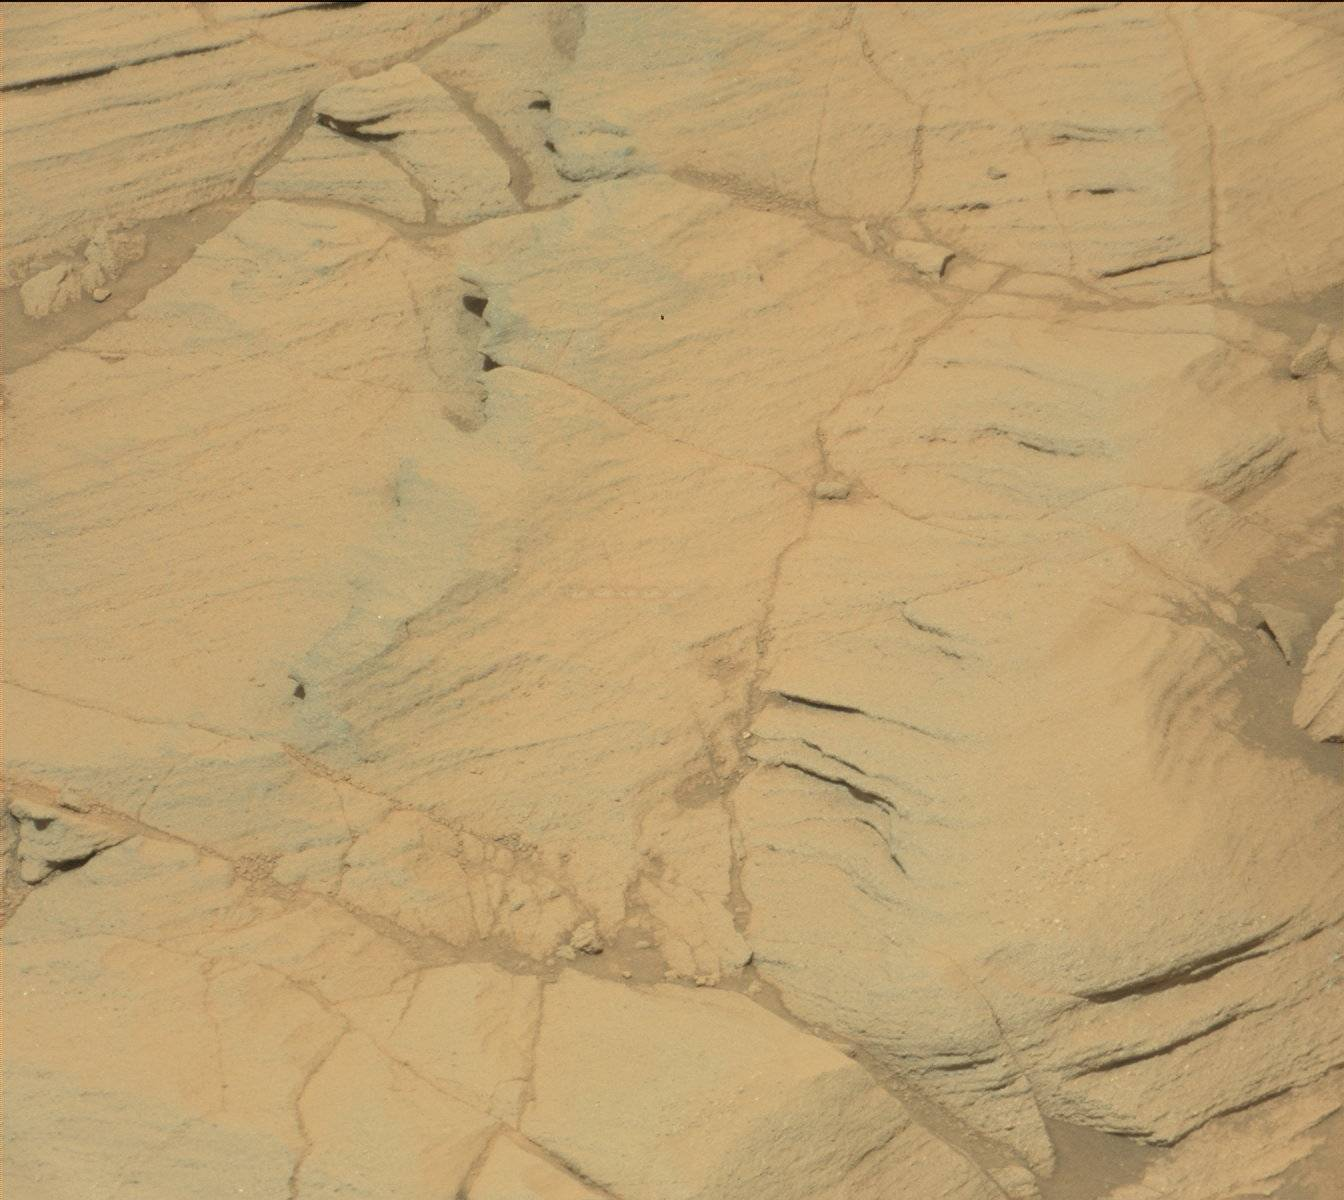 Nasa's Mars rover Curiosity acquired this image using its Mast Camera (Mastcam) on Sol 1118